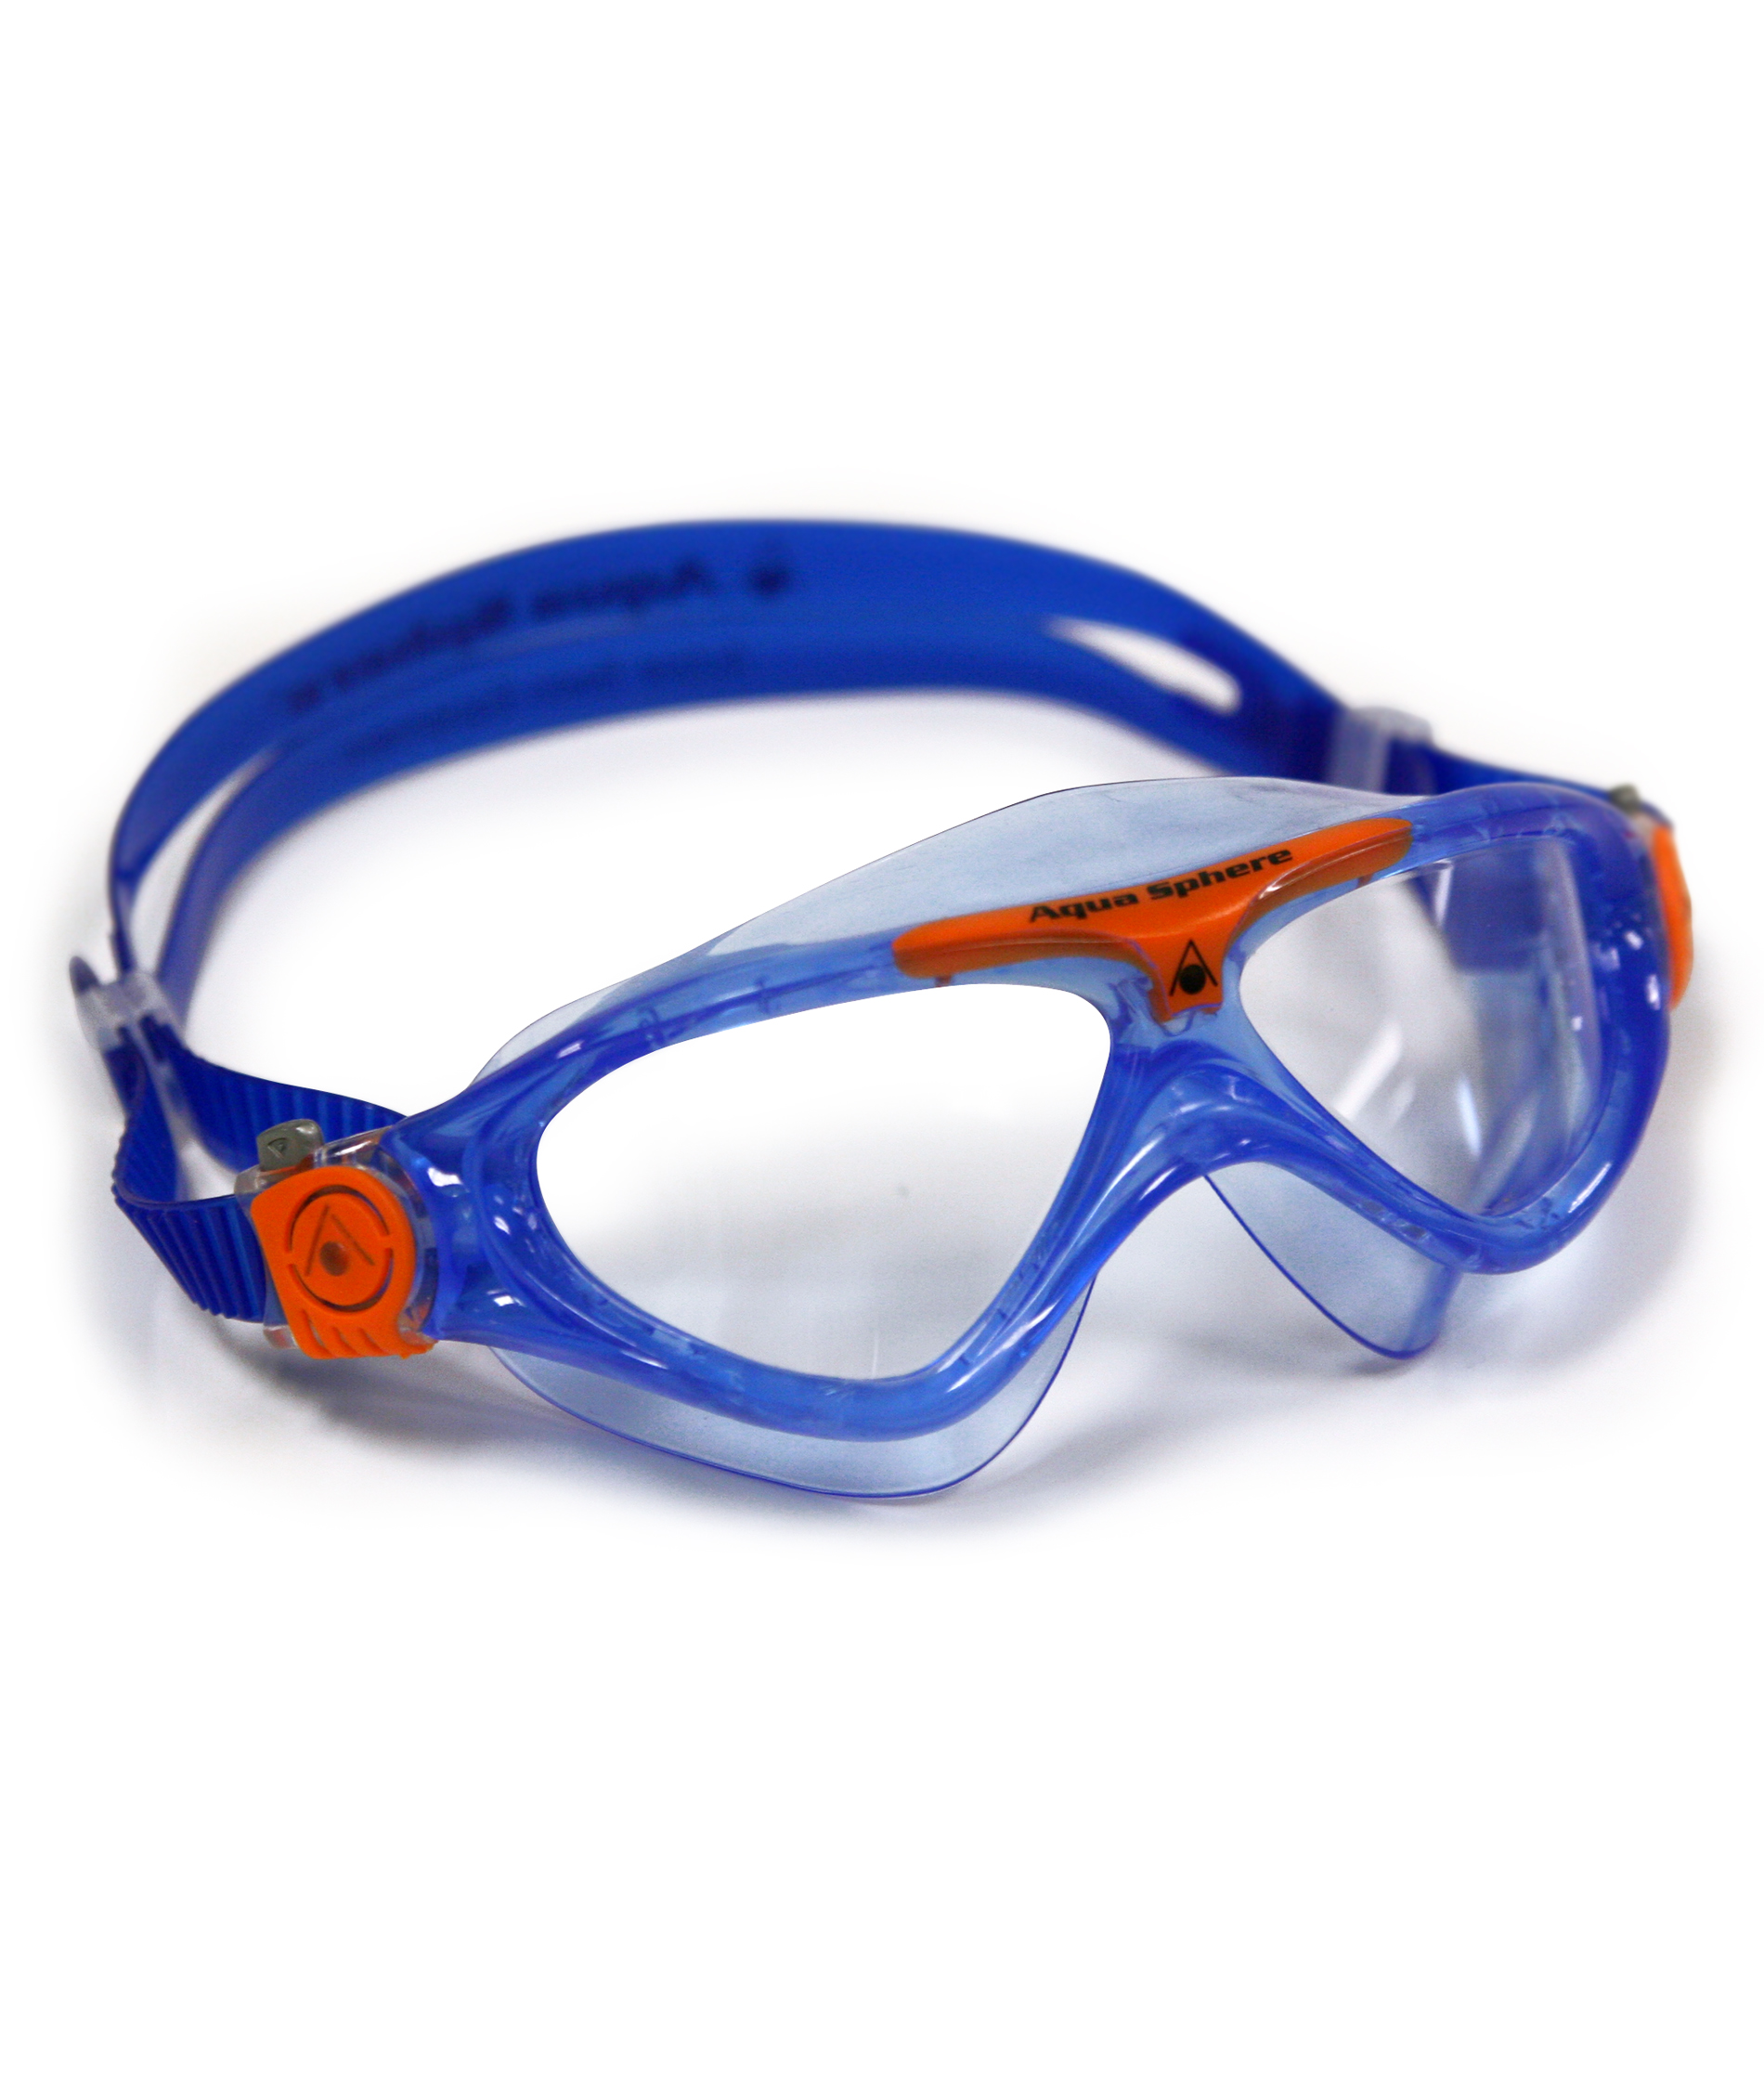 Aqua Sphere Vista Junior Mask - Blue/Orange